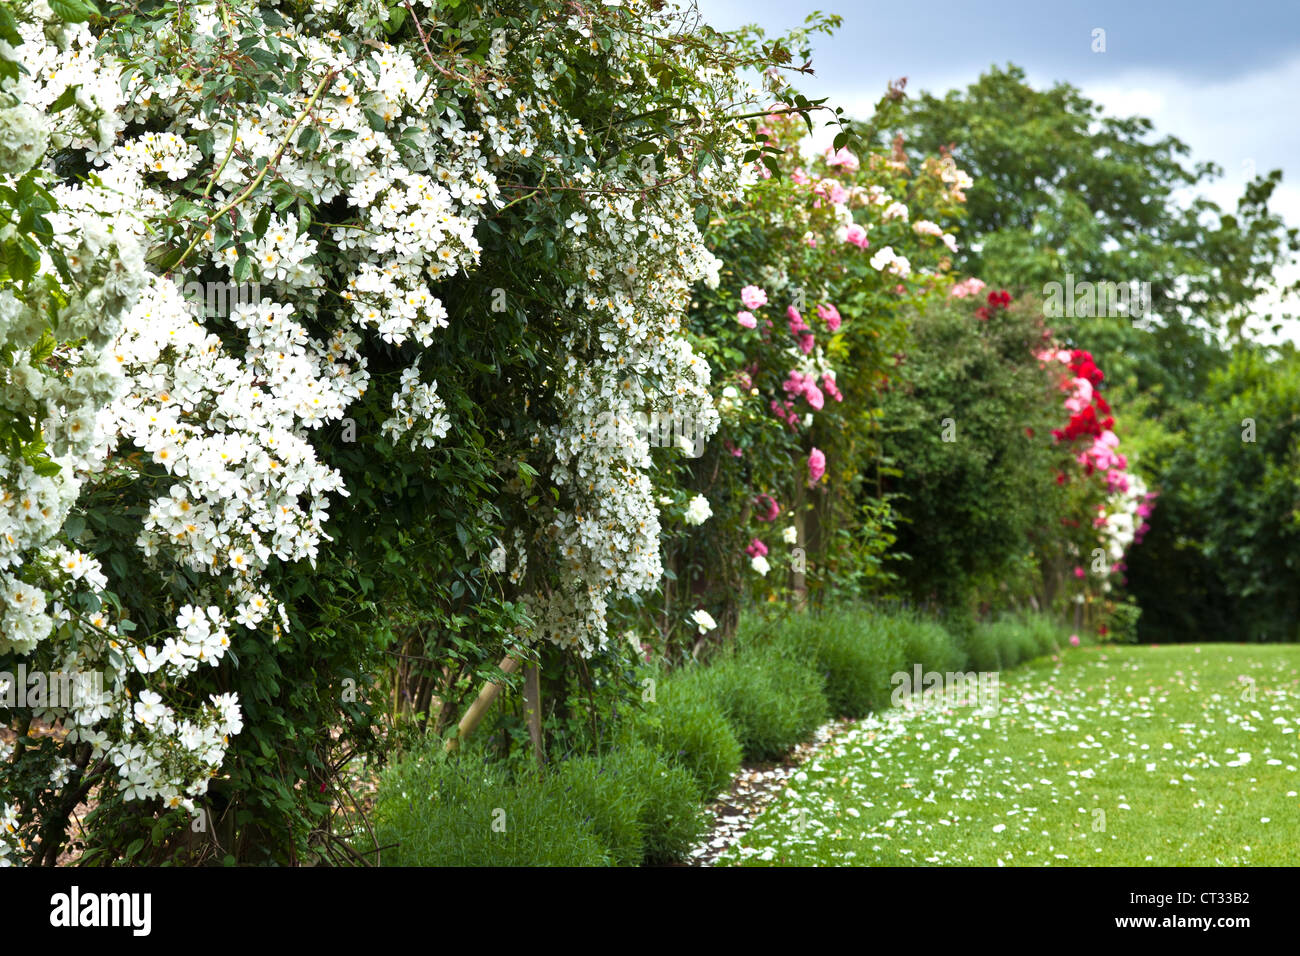 Glorious Display of Climbing Rose at RHS Hyde Hall Gardens - Stock Image